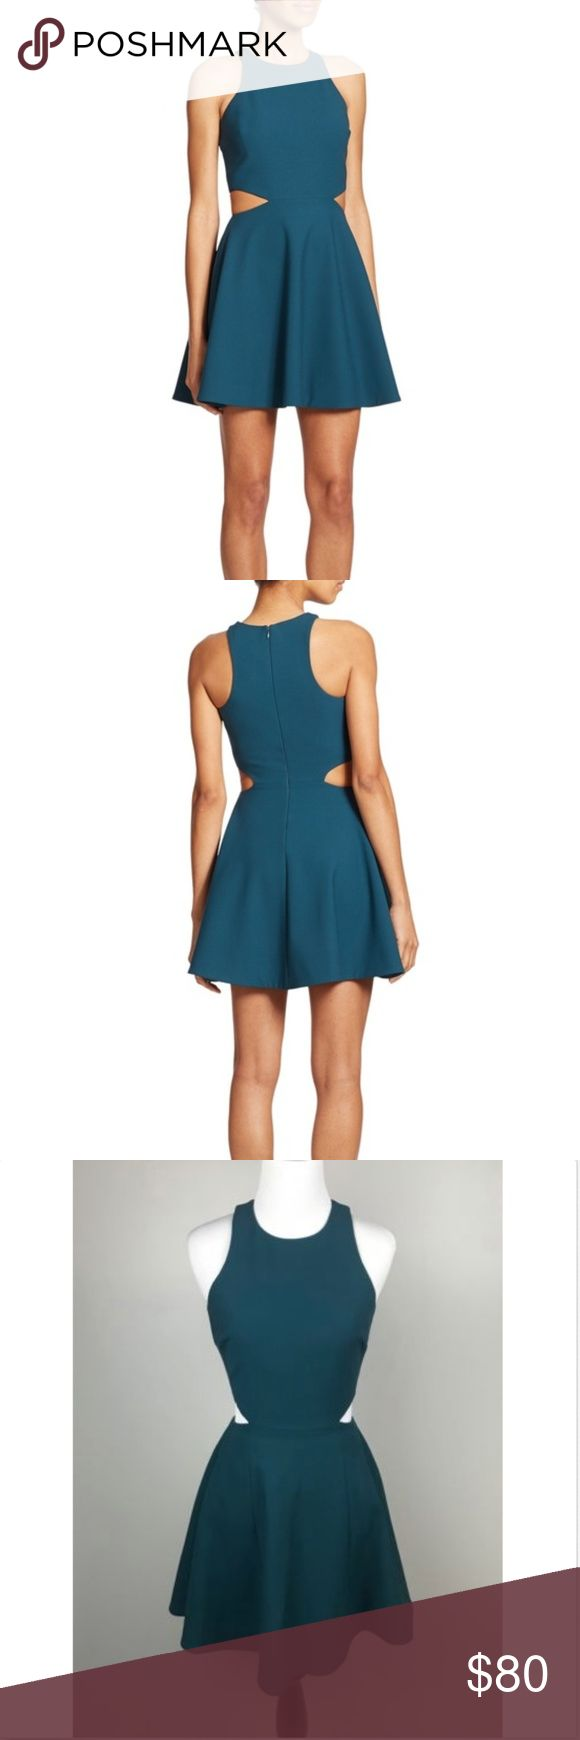 "Elizabeth and James Teal Emory Cut Out Dress Elizabeth and James Size 2 Dress Emory Cut Out Dress Teal Fit & Flare Sleeveless  Measurements Laying Flat:  Armpit to Armpit: 14.5"" Length: 33"" Elizabeth and James Dresses"